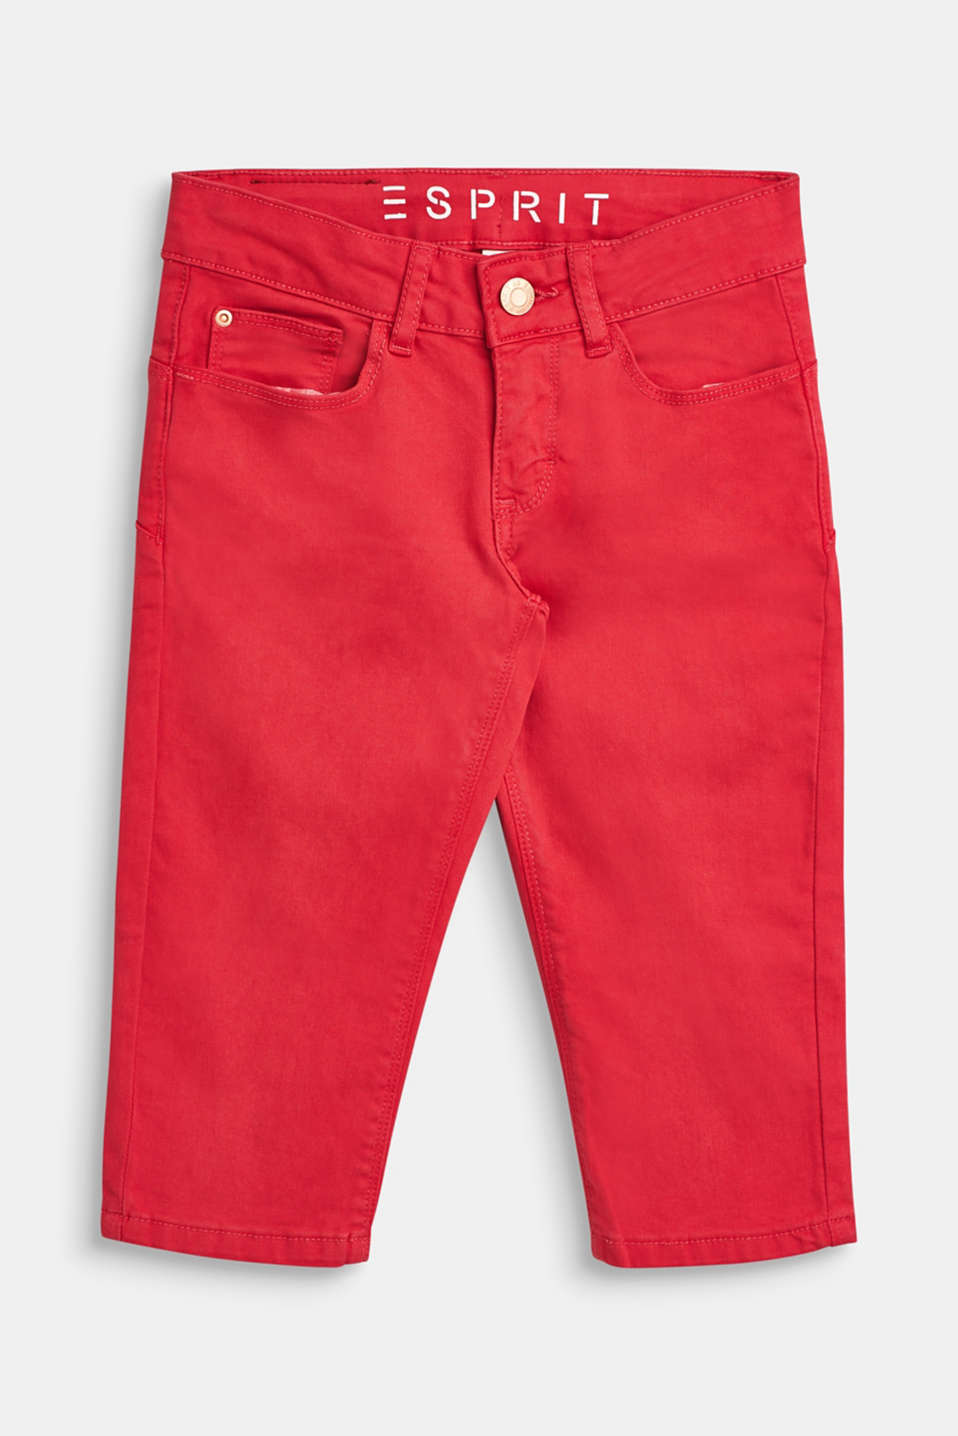 Esprit - Coloured Capris with an adjustable waistband